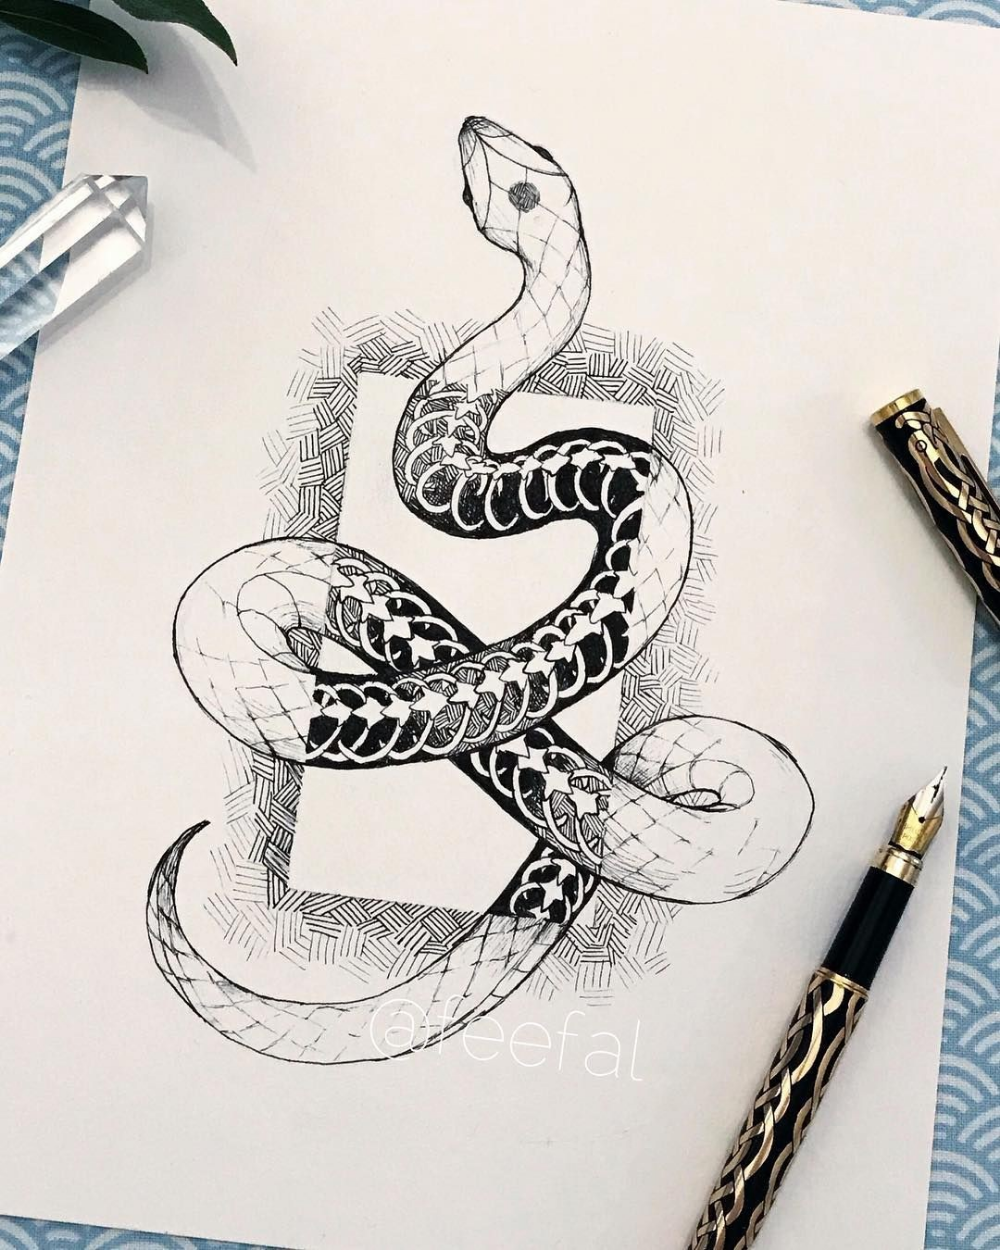 30 Illustrations About Tattoos In 2019 Dessin Serpent Dessin